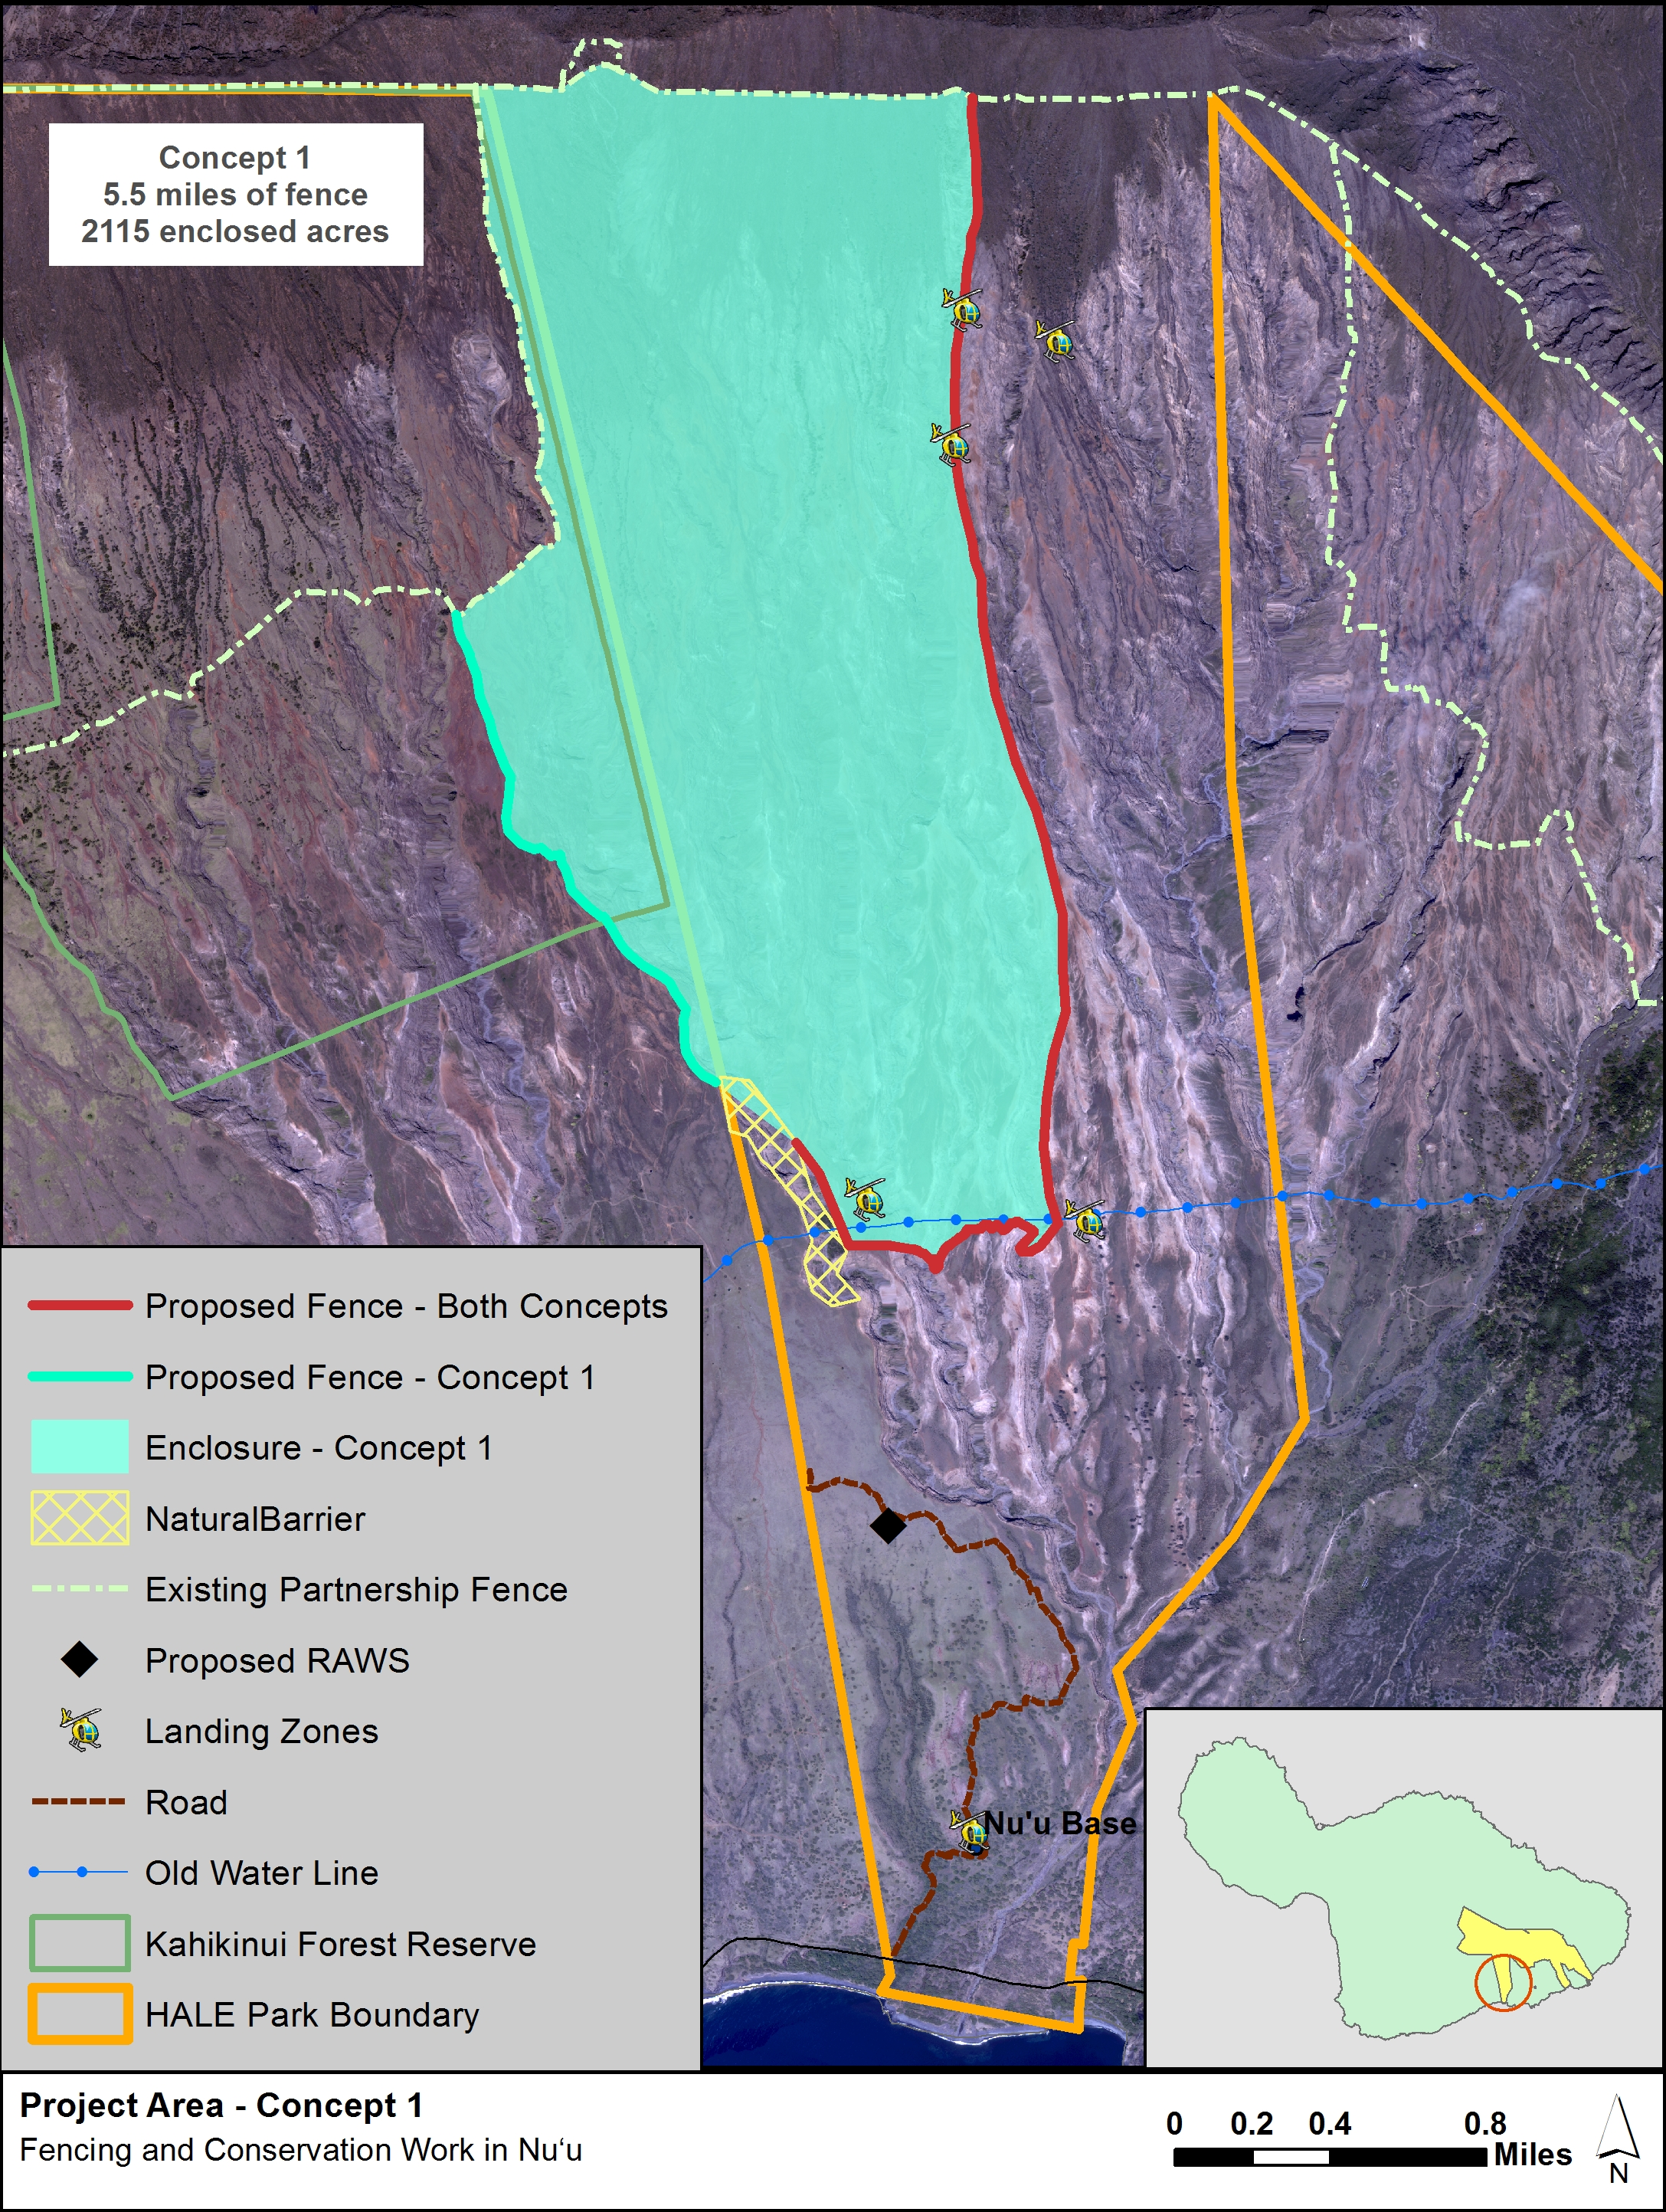 Map 1: One of two concepts of proposed fence location and conservation areas